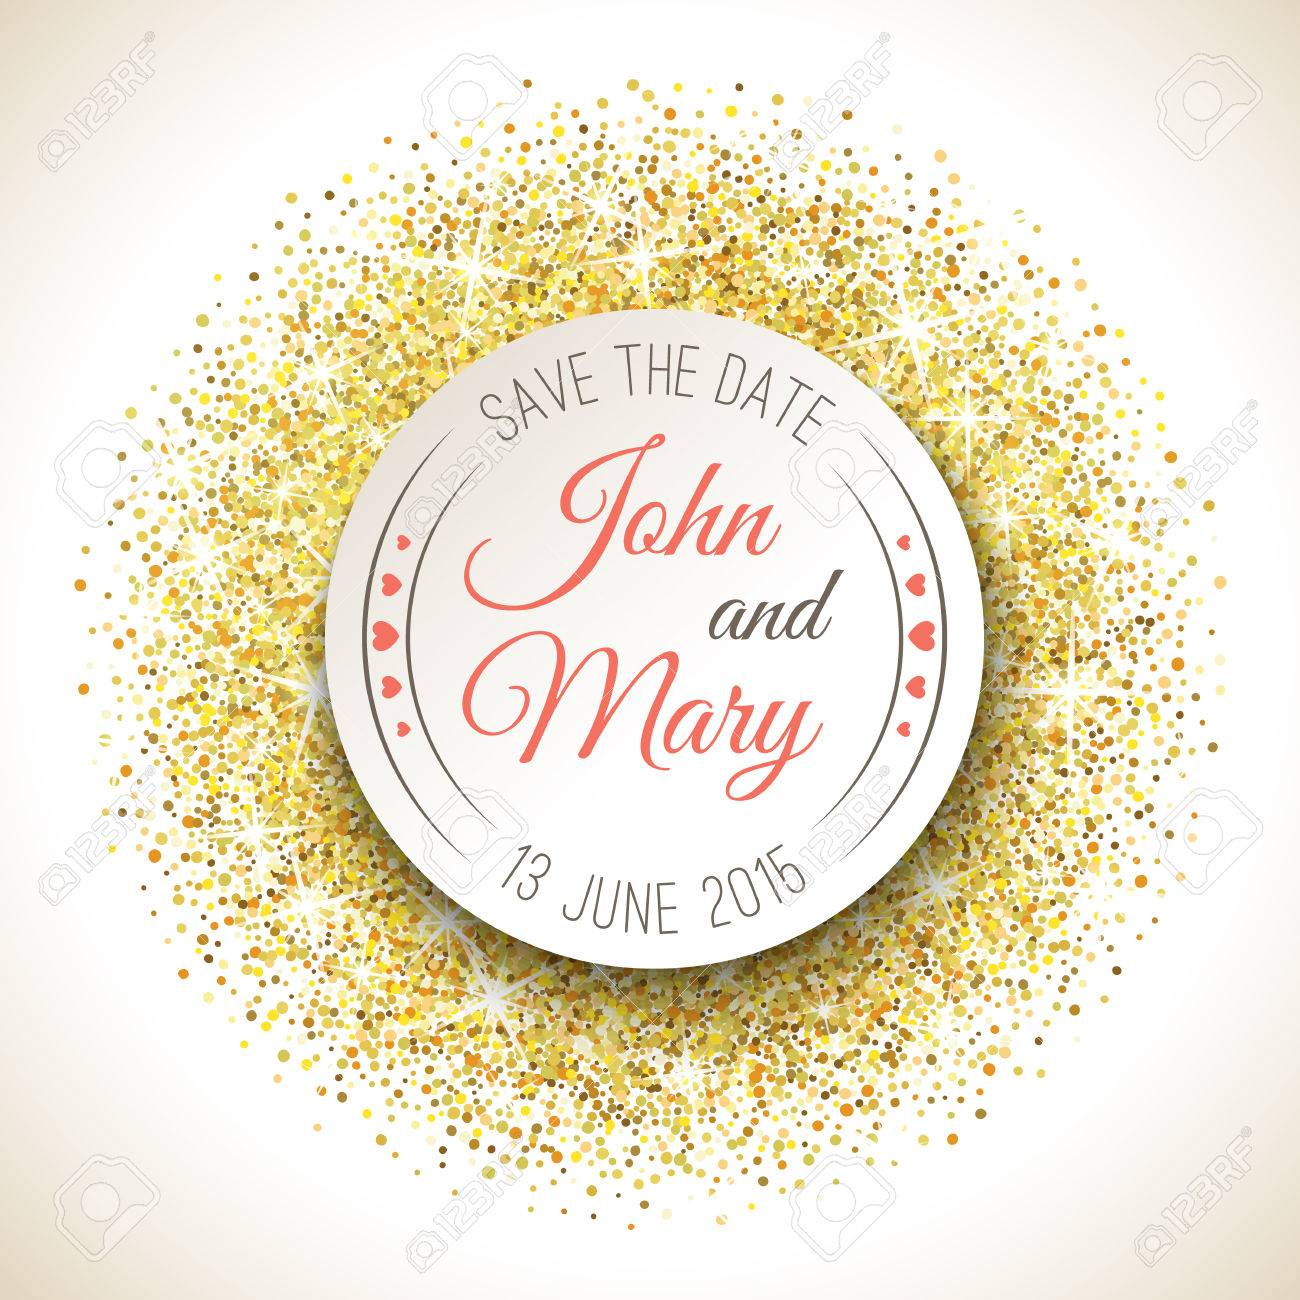 Perfect wedding template with golden confetti theme. Ideal for Save The Date, baby shower, mothers day, valentines day, birthday cards, invitations. - 53524529